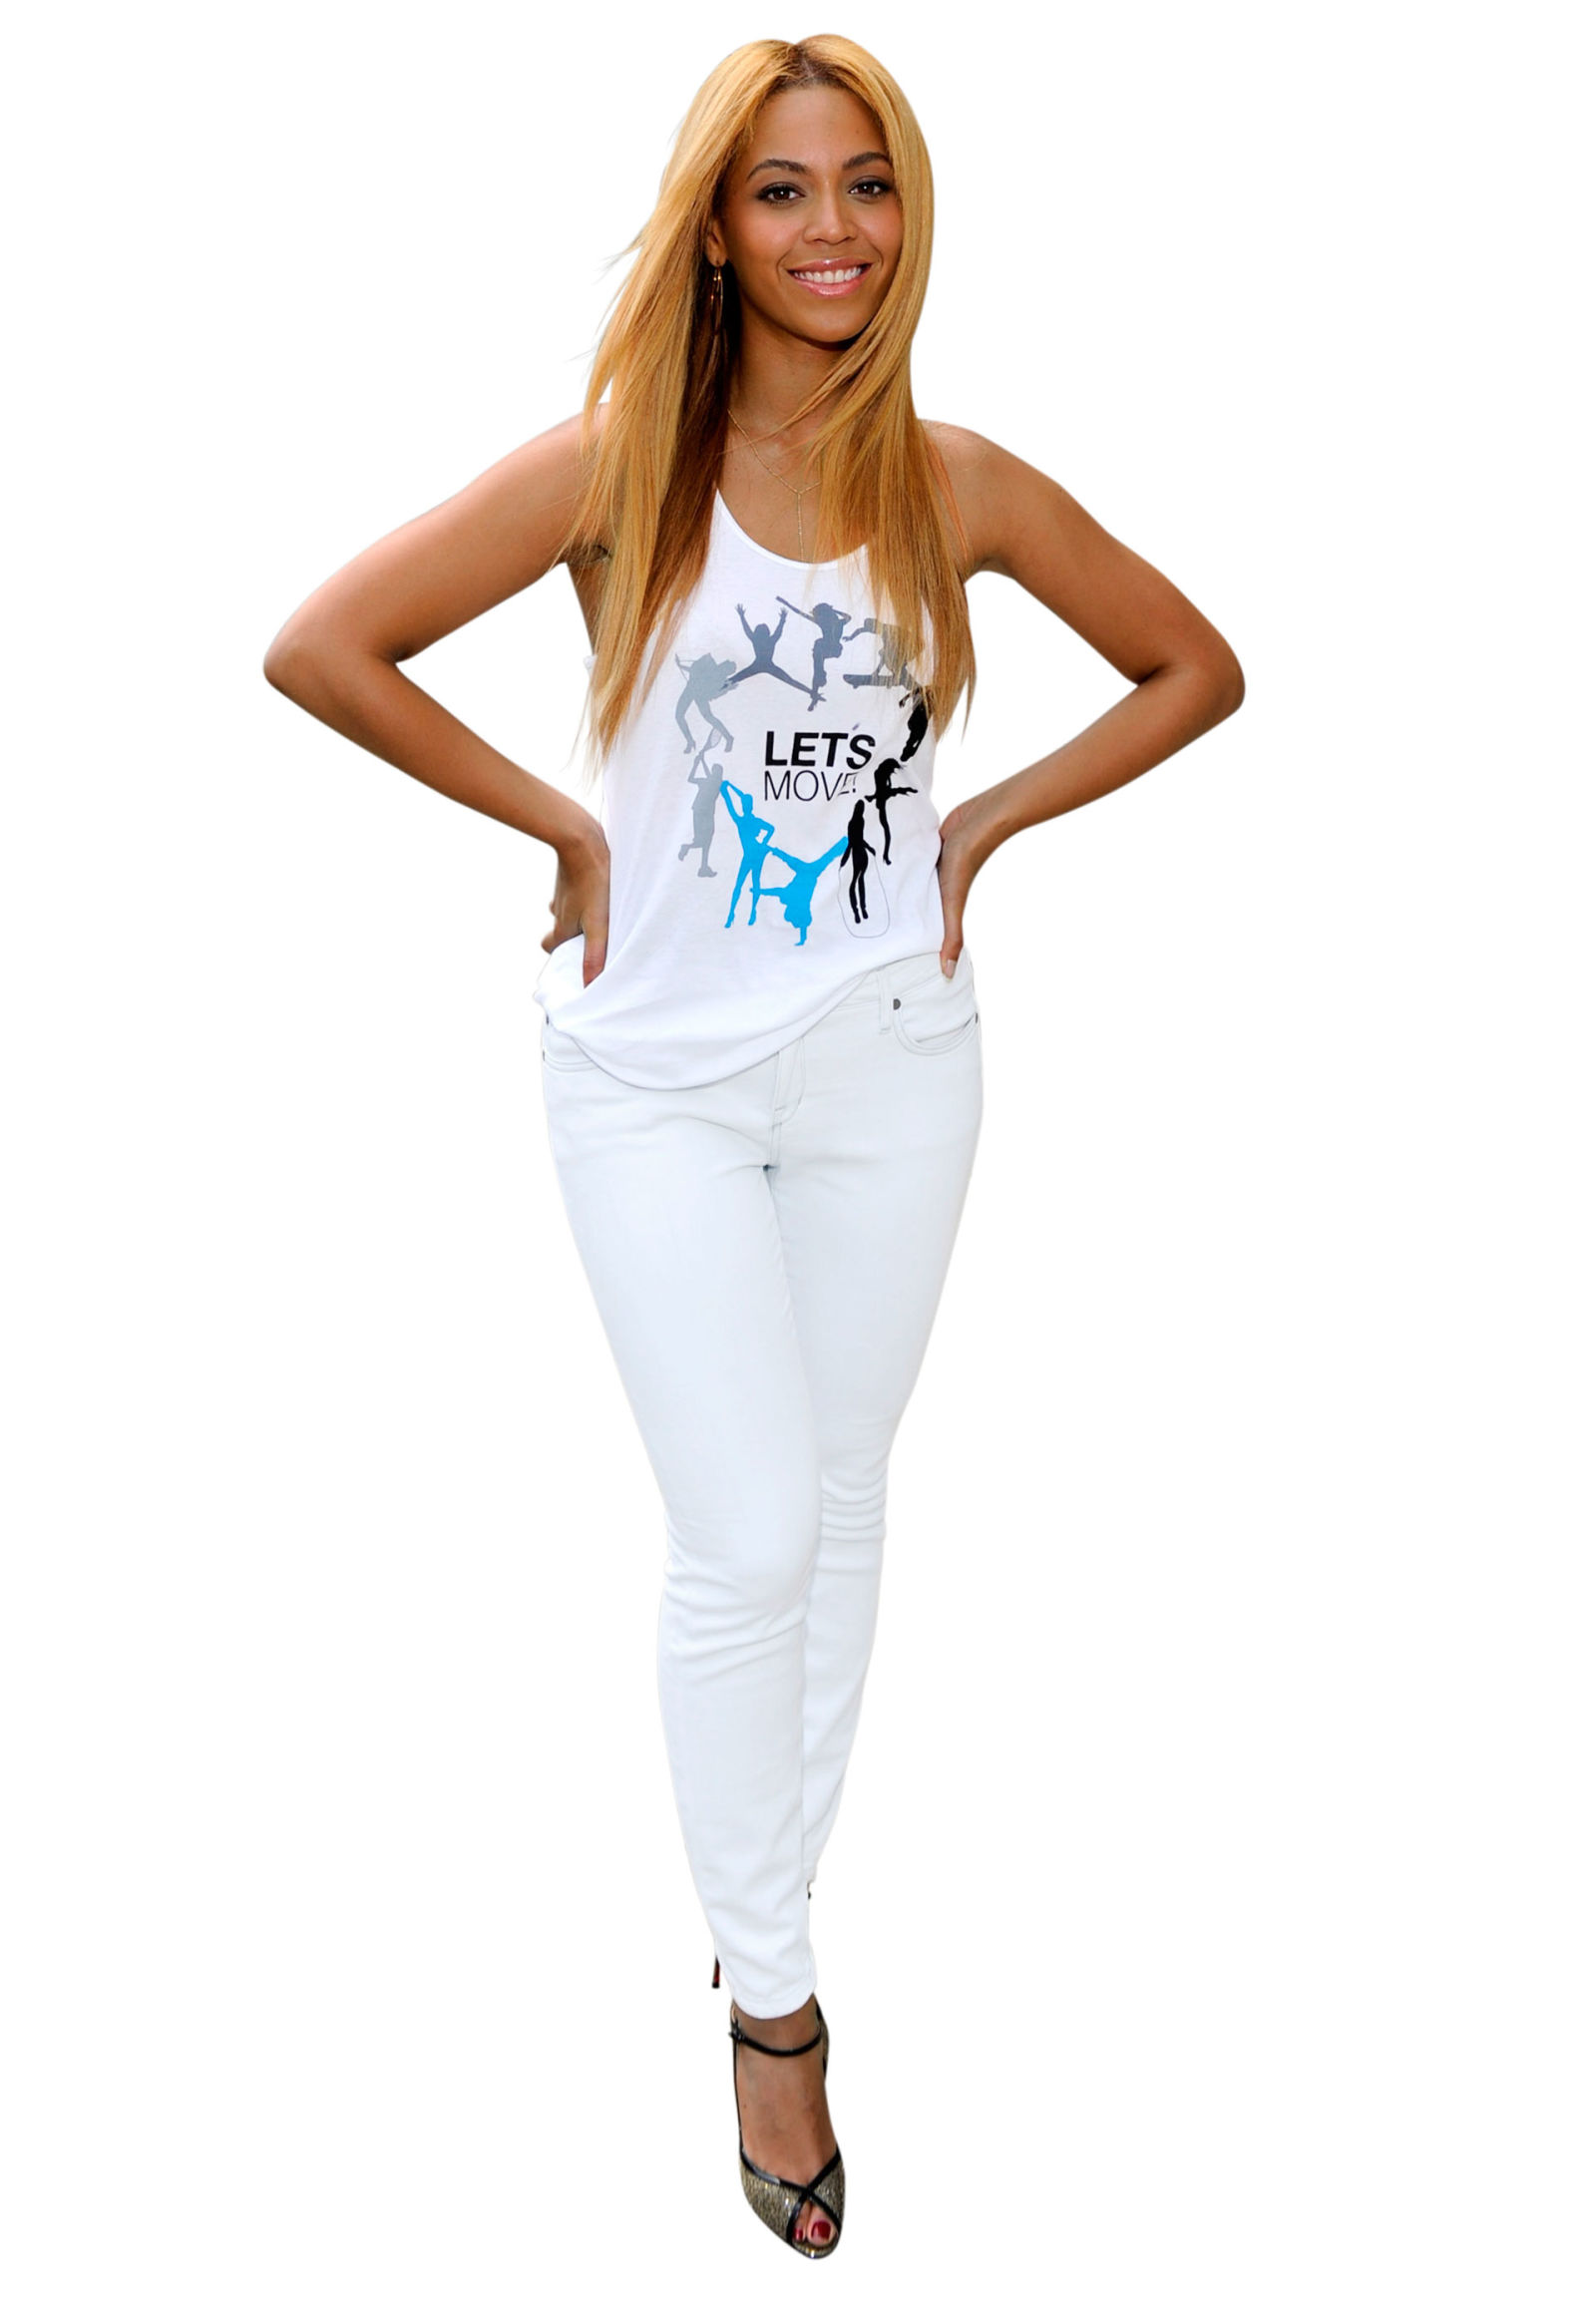 How To Wear White Jeans - Flattering White Jeans For Body Type